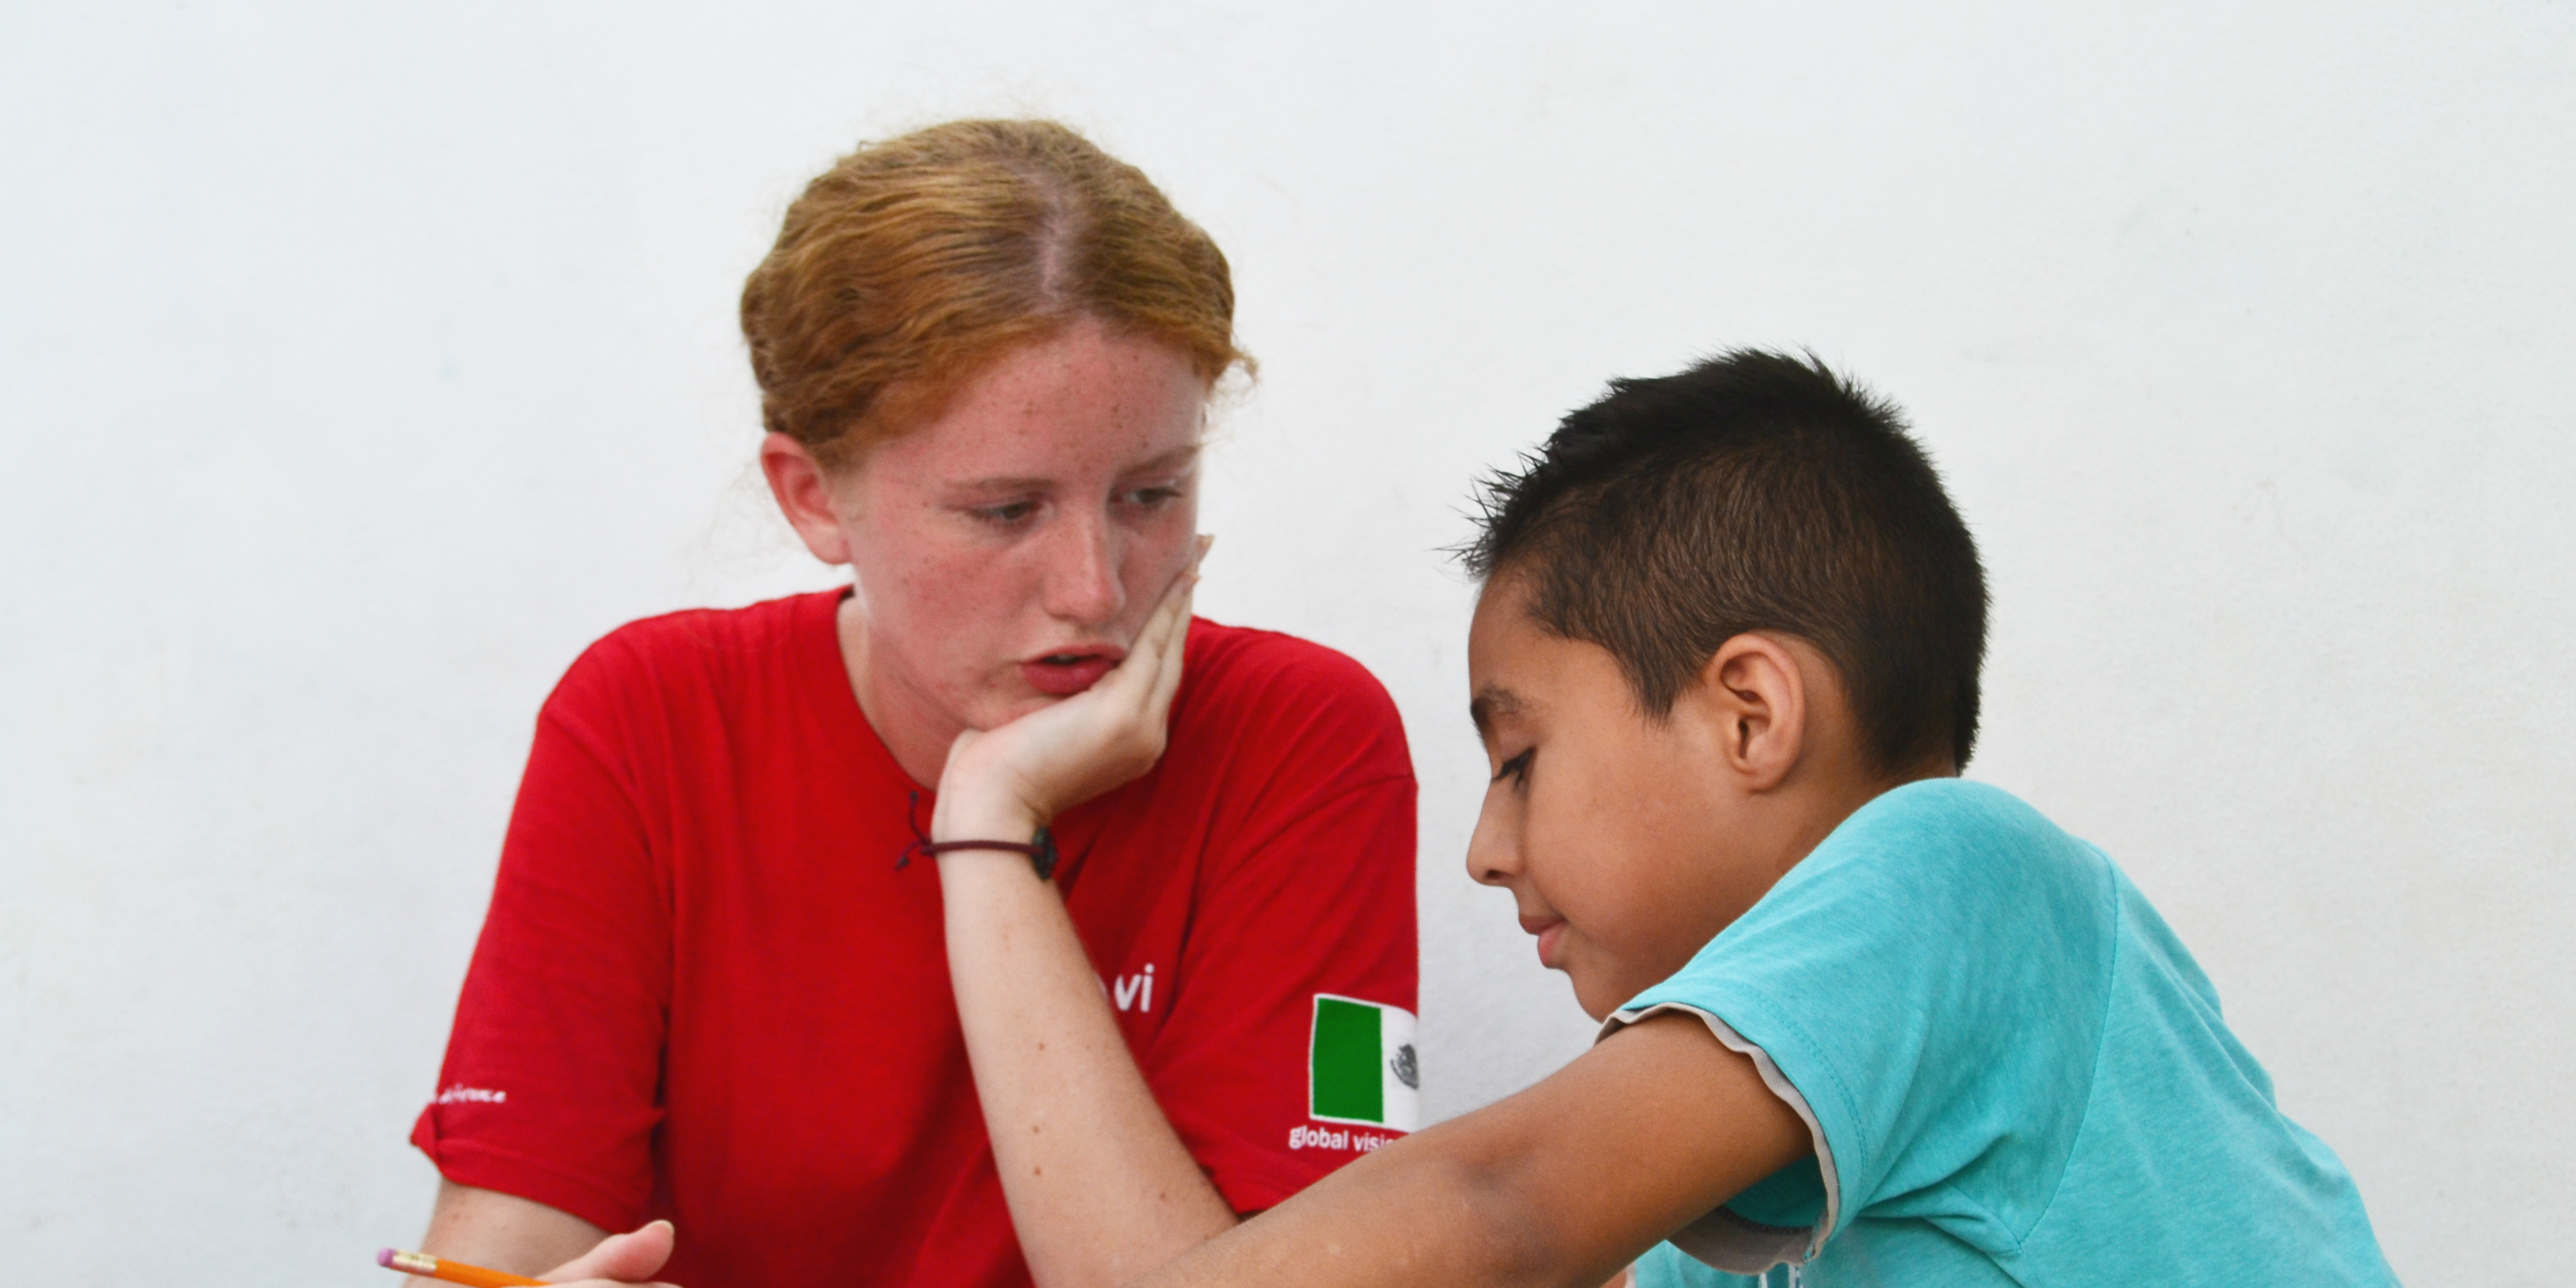 A GVI participant makes the most of their gap year by teaching English to children in Mexico.